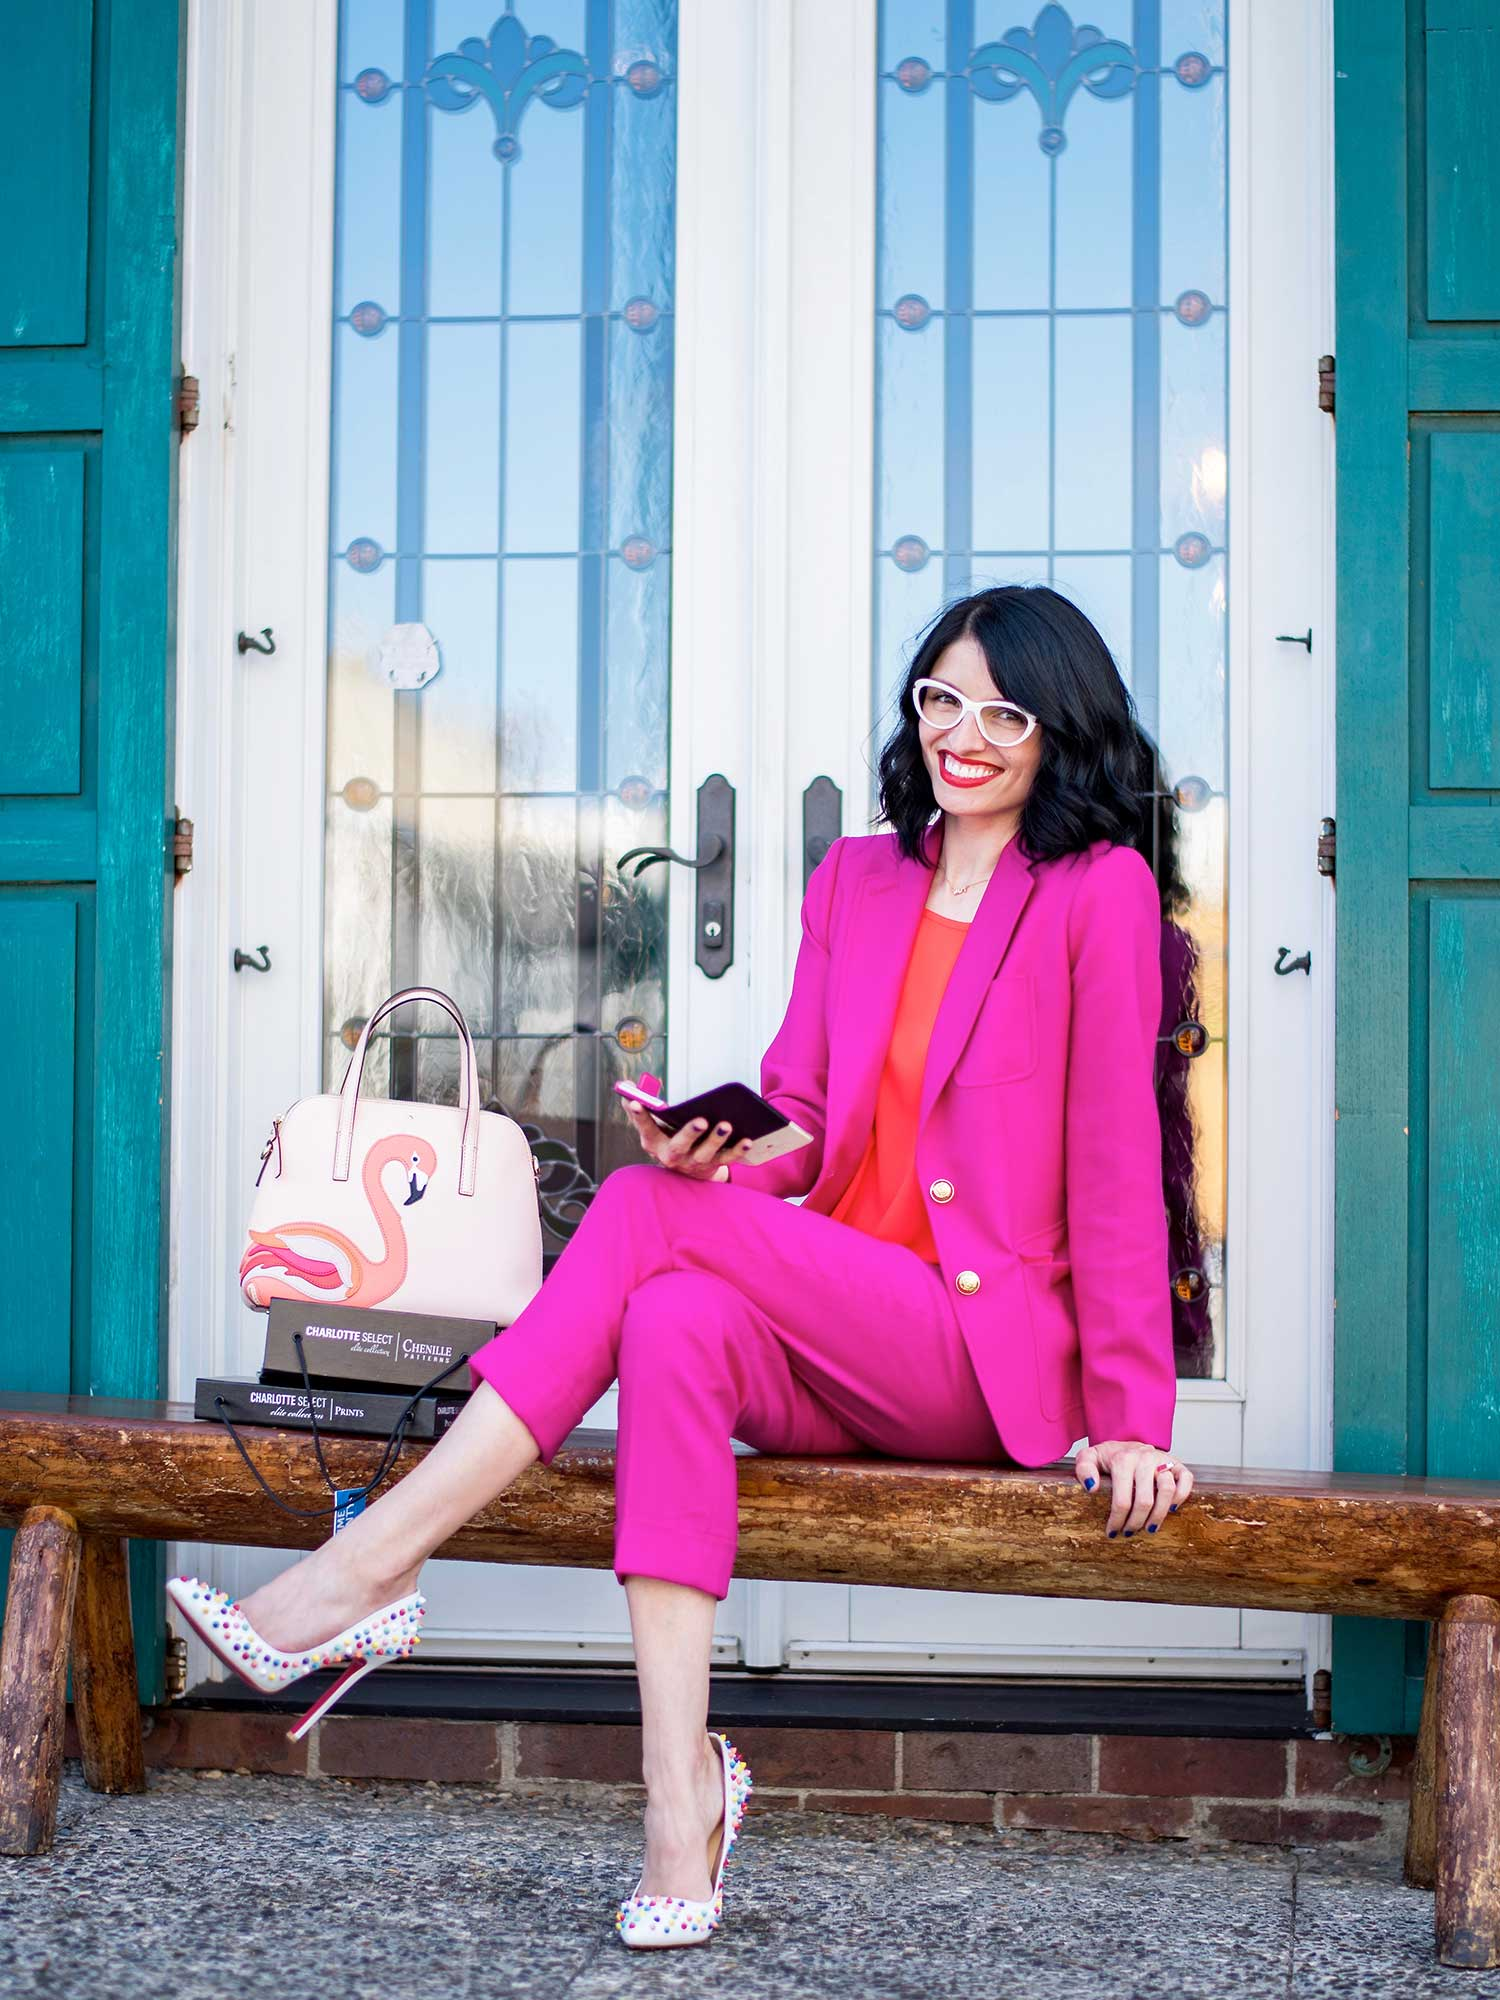 jenna-pilant-san-diego-fashion-blogger-lucky-little-mustardseed-how-to-dress-for-a-business-meeting-j-crew-womens-suit-4